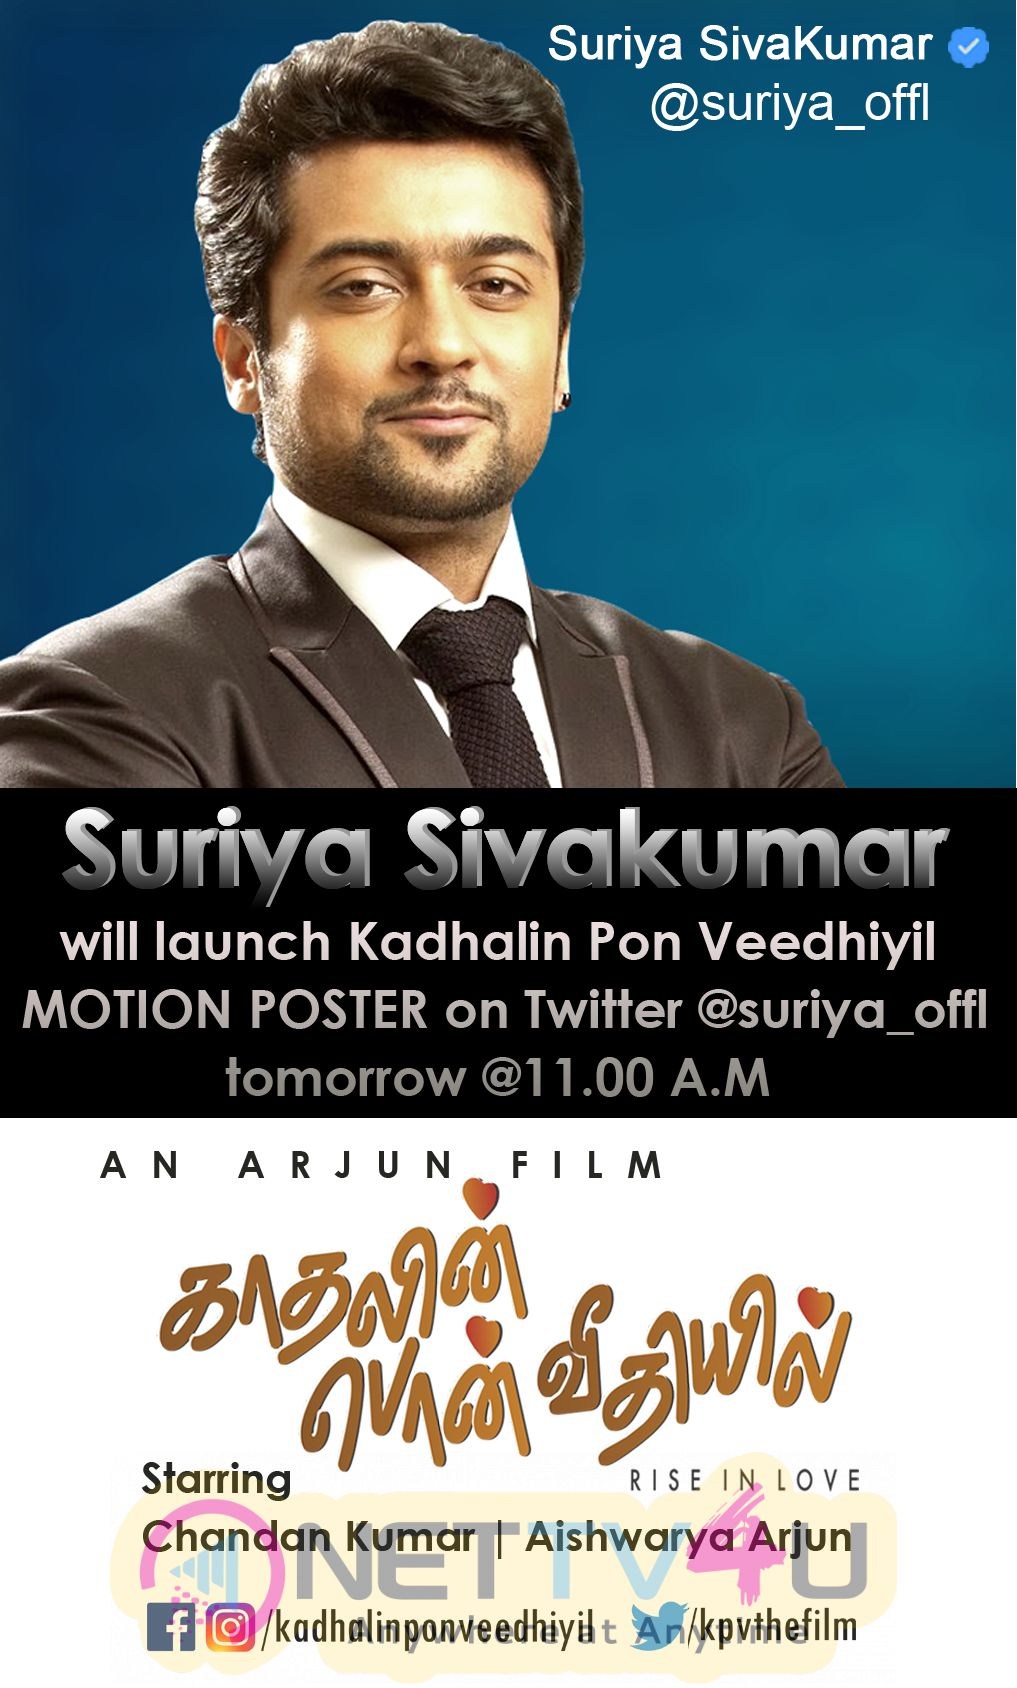 Kadhalin Pon Veedhiyil Motion Poster Launch Tomorrow By Suriya Sivakumar